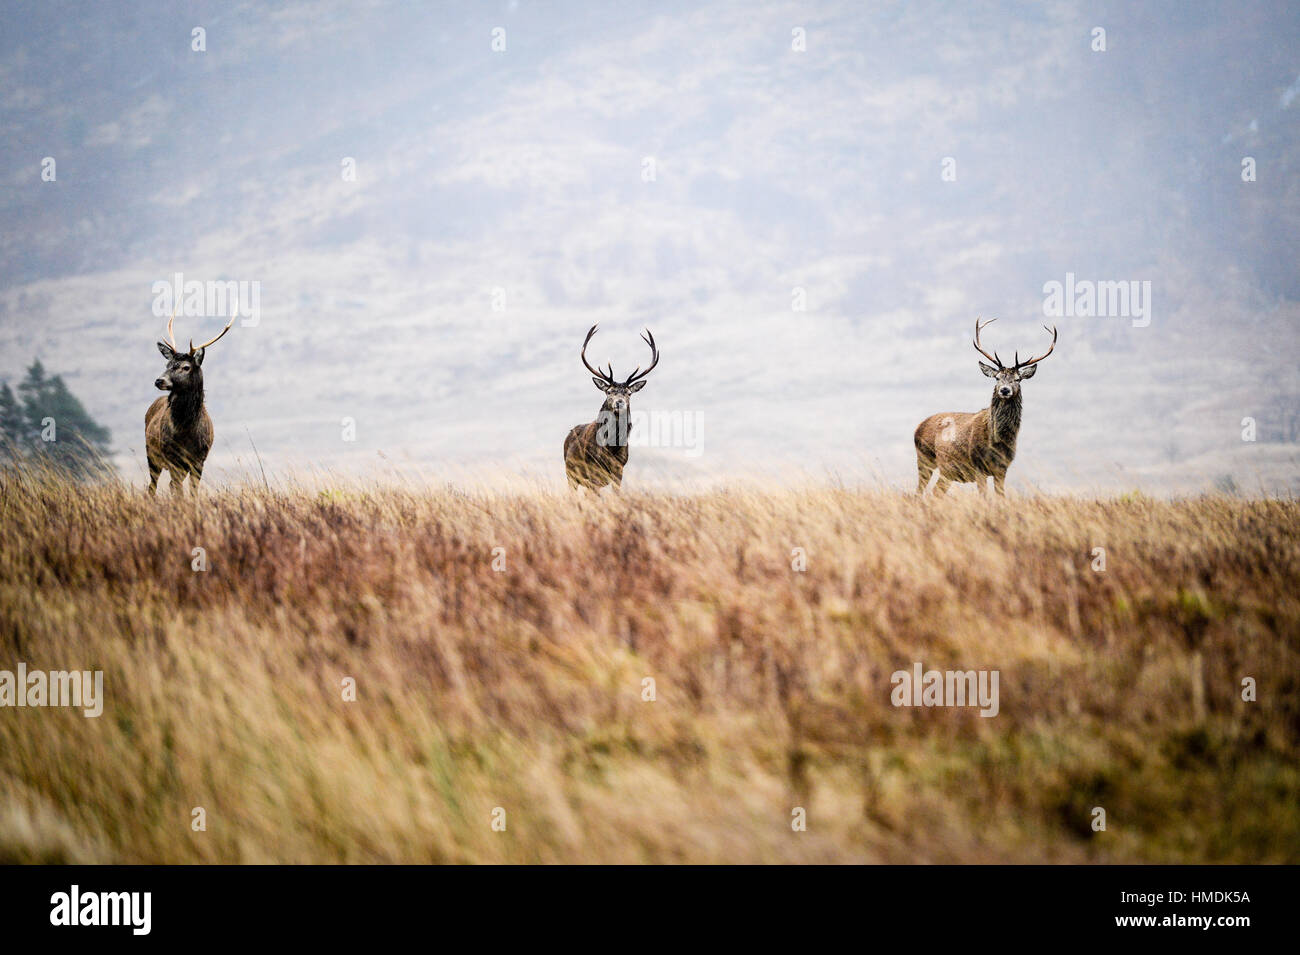 The monarch of the glen, three red deer stag's stands guard on a cold winters day in Glen Etive, Scotland. - Stock Image